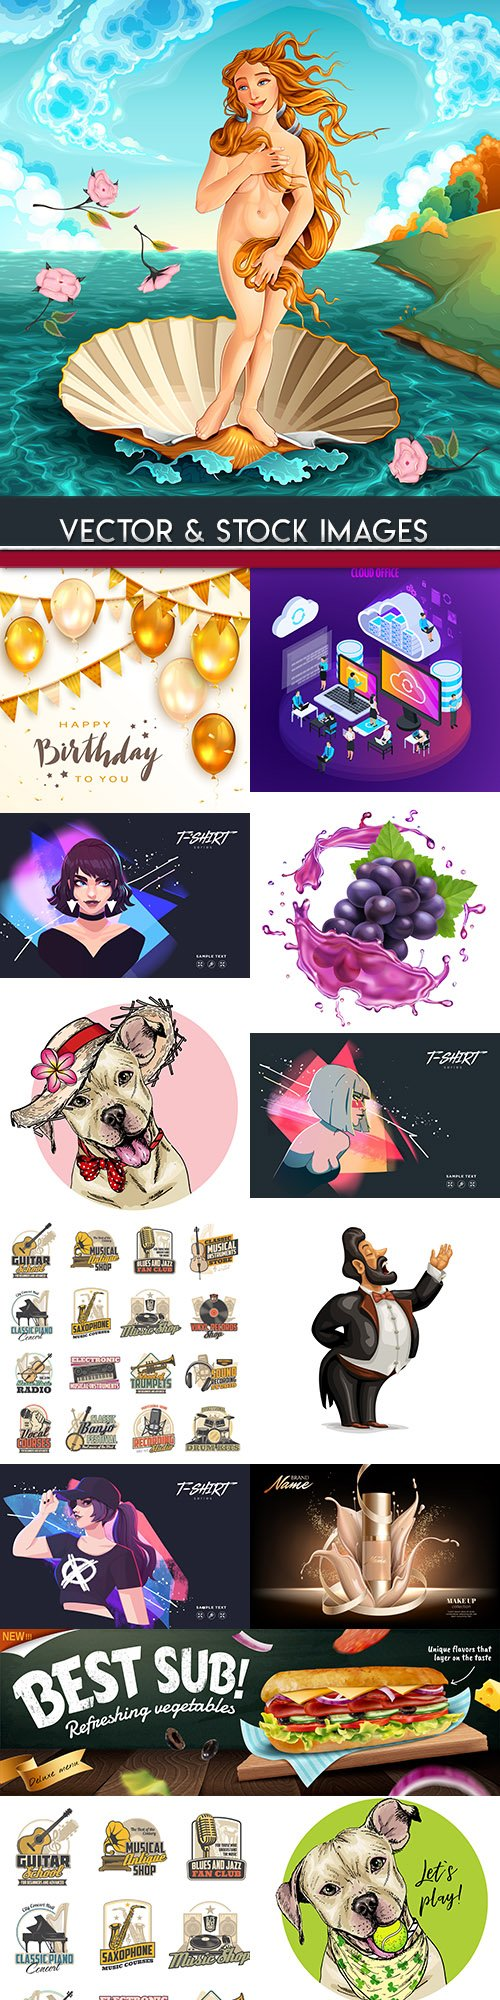 Collection vector illustrations on different subjects 44